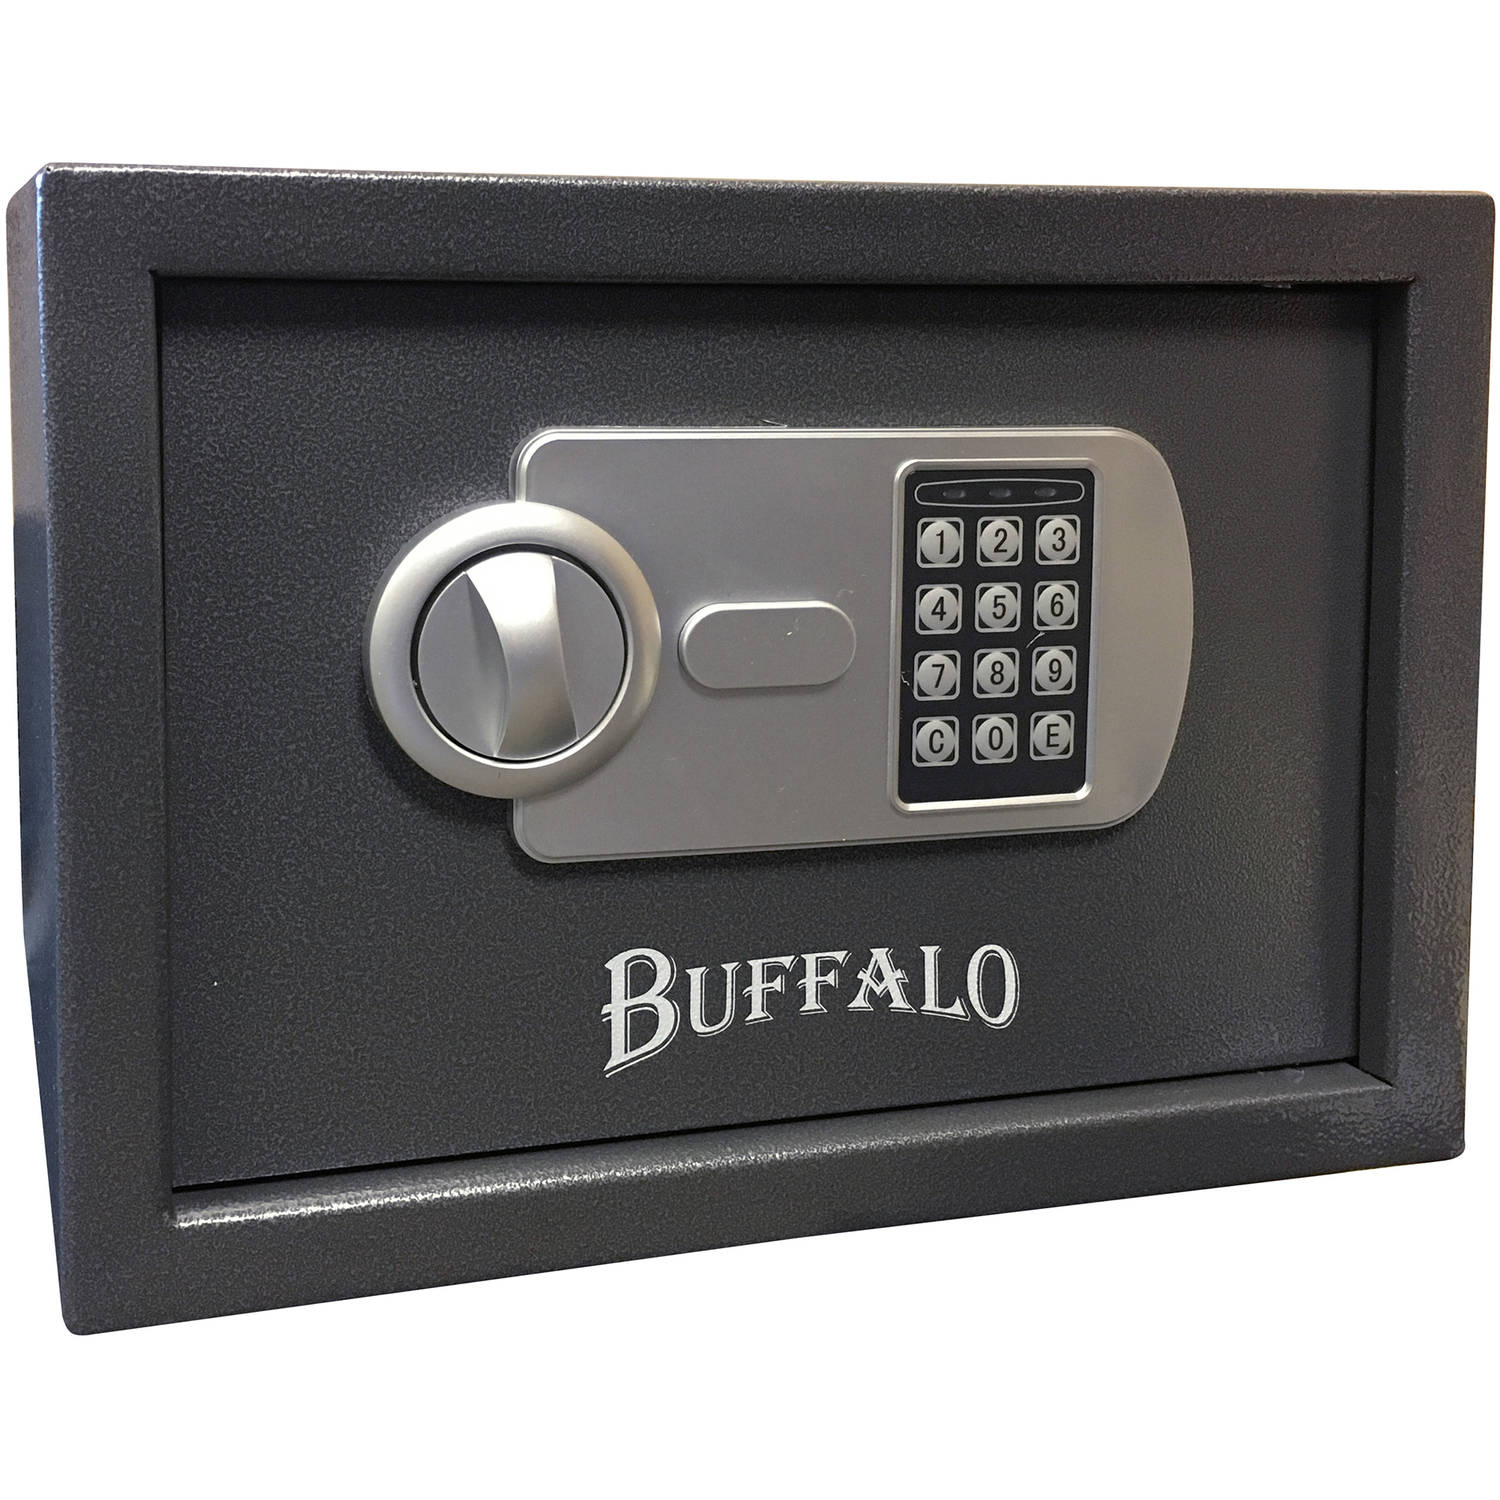 Buffalo Outdoor Pistol Safe with Keypad Lock